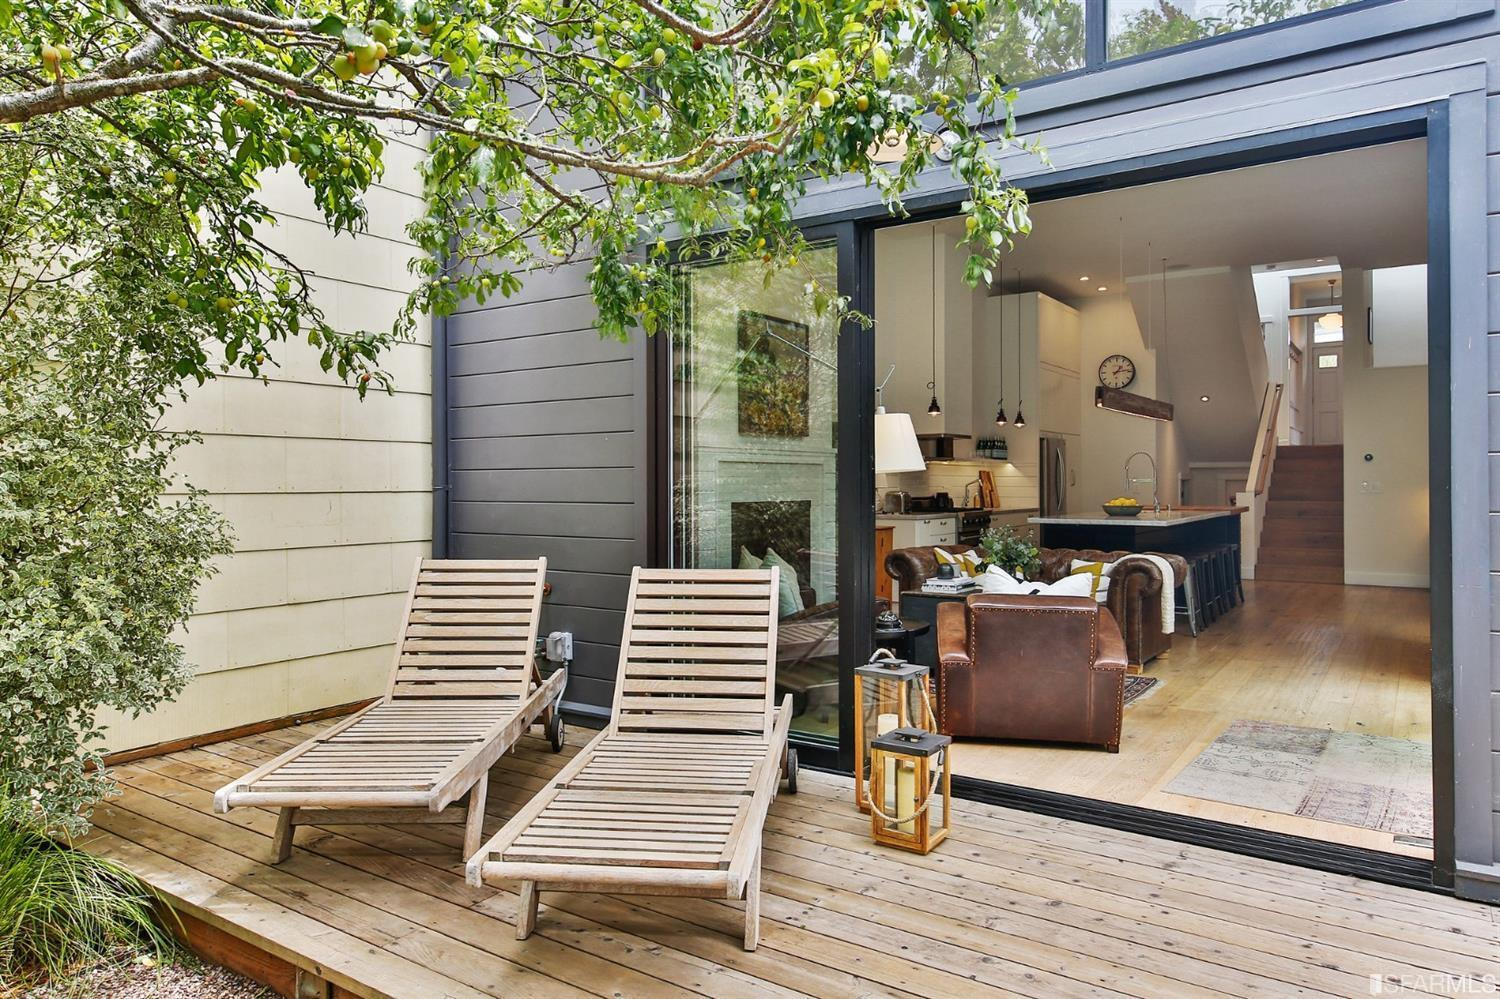 Two lounge chairs on back patio off the back of modern house